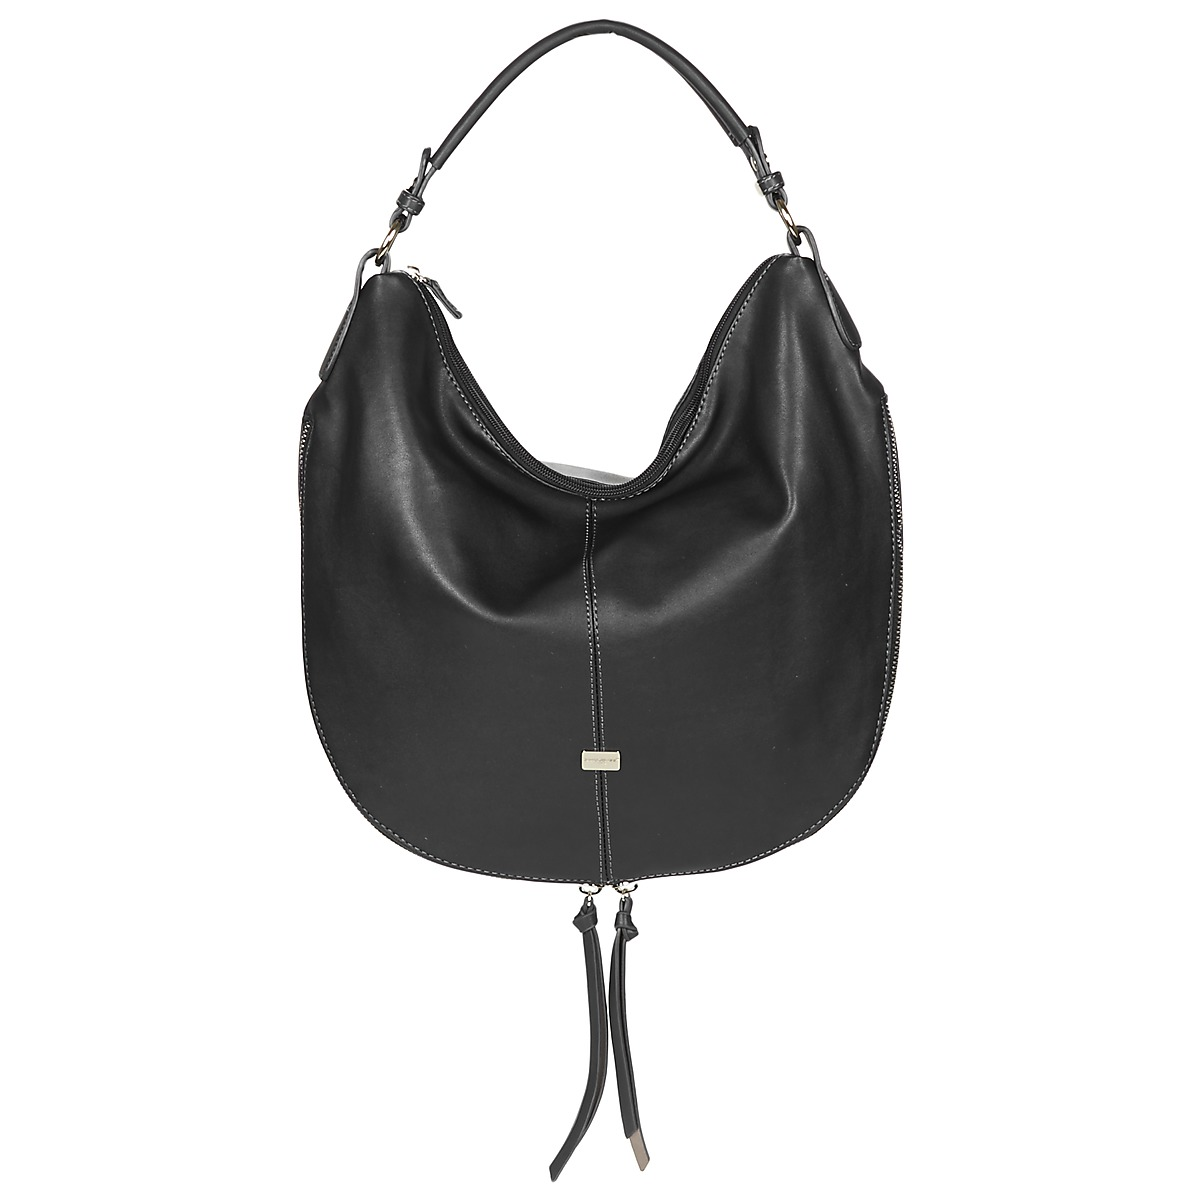 Borsa a spalla donna David Jones  -  Nero